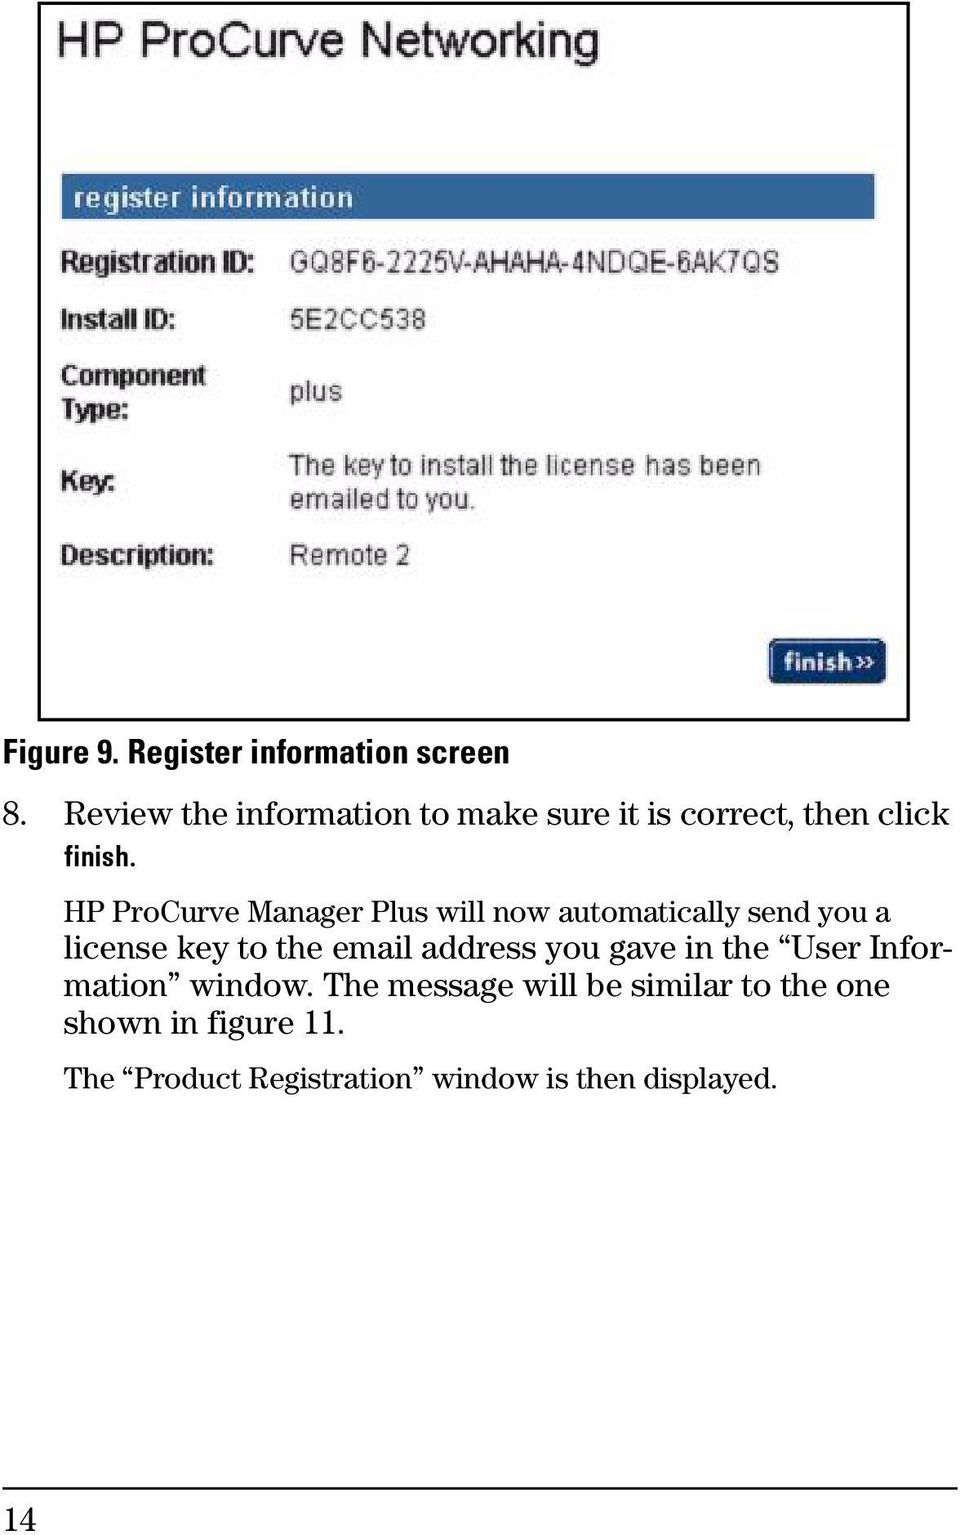 HP ProCurve Manager Plus will now automatically send you a license key to the email